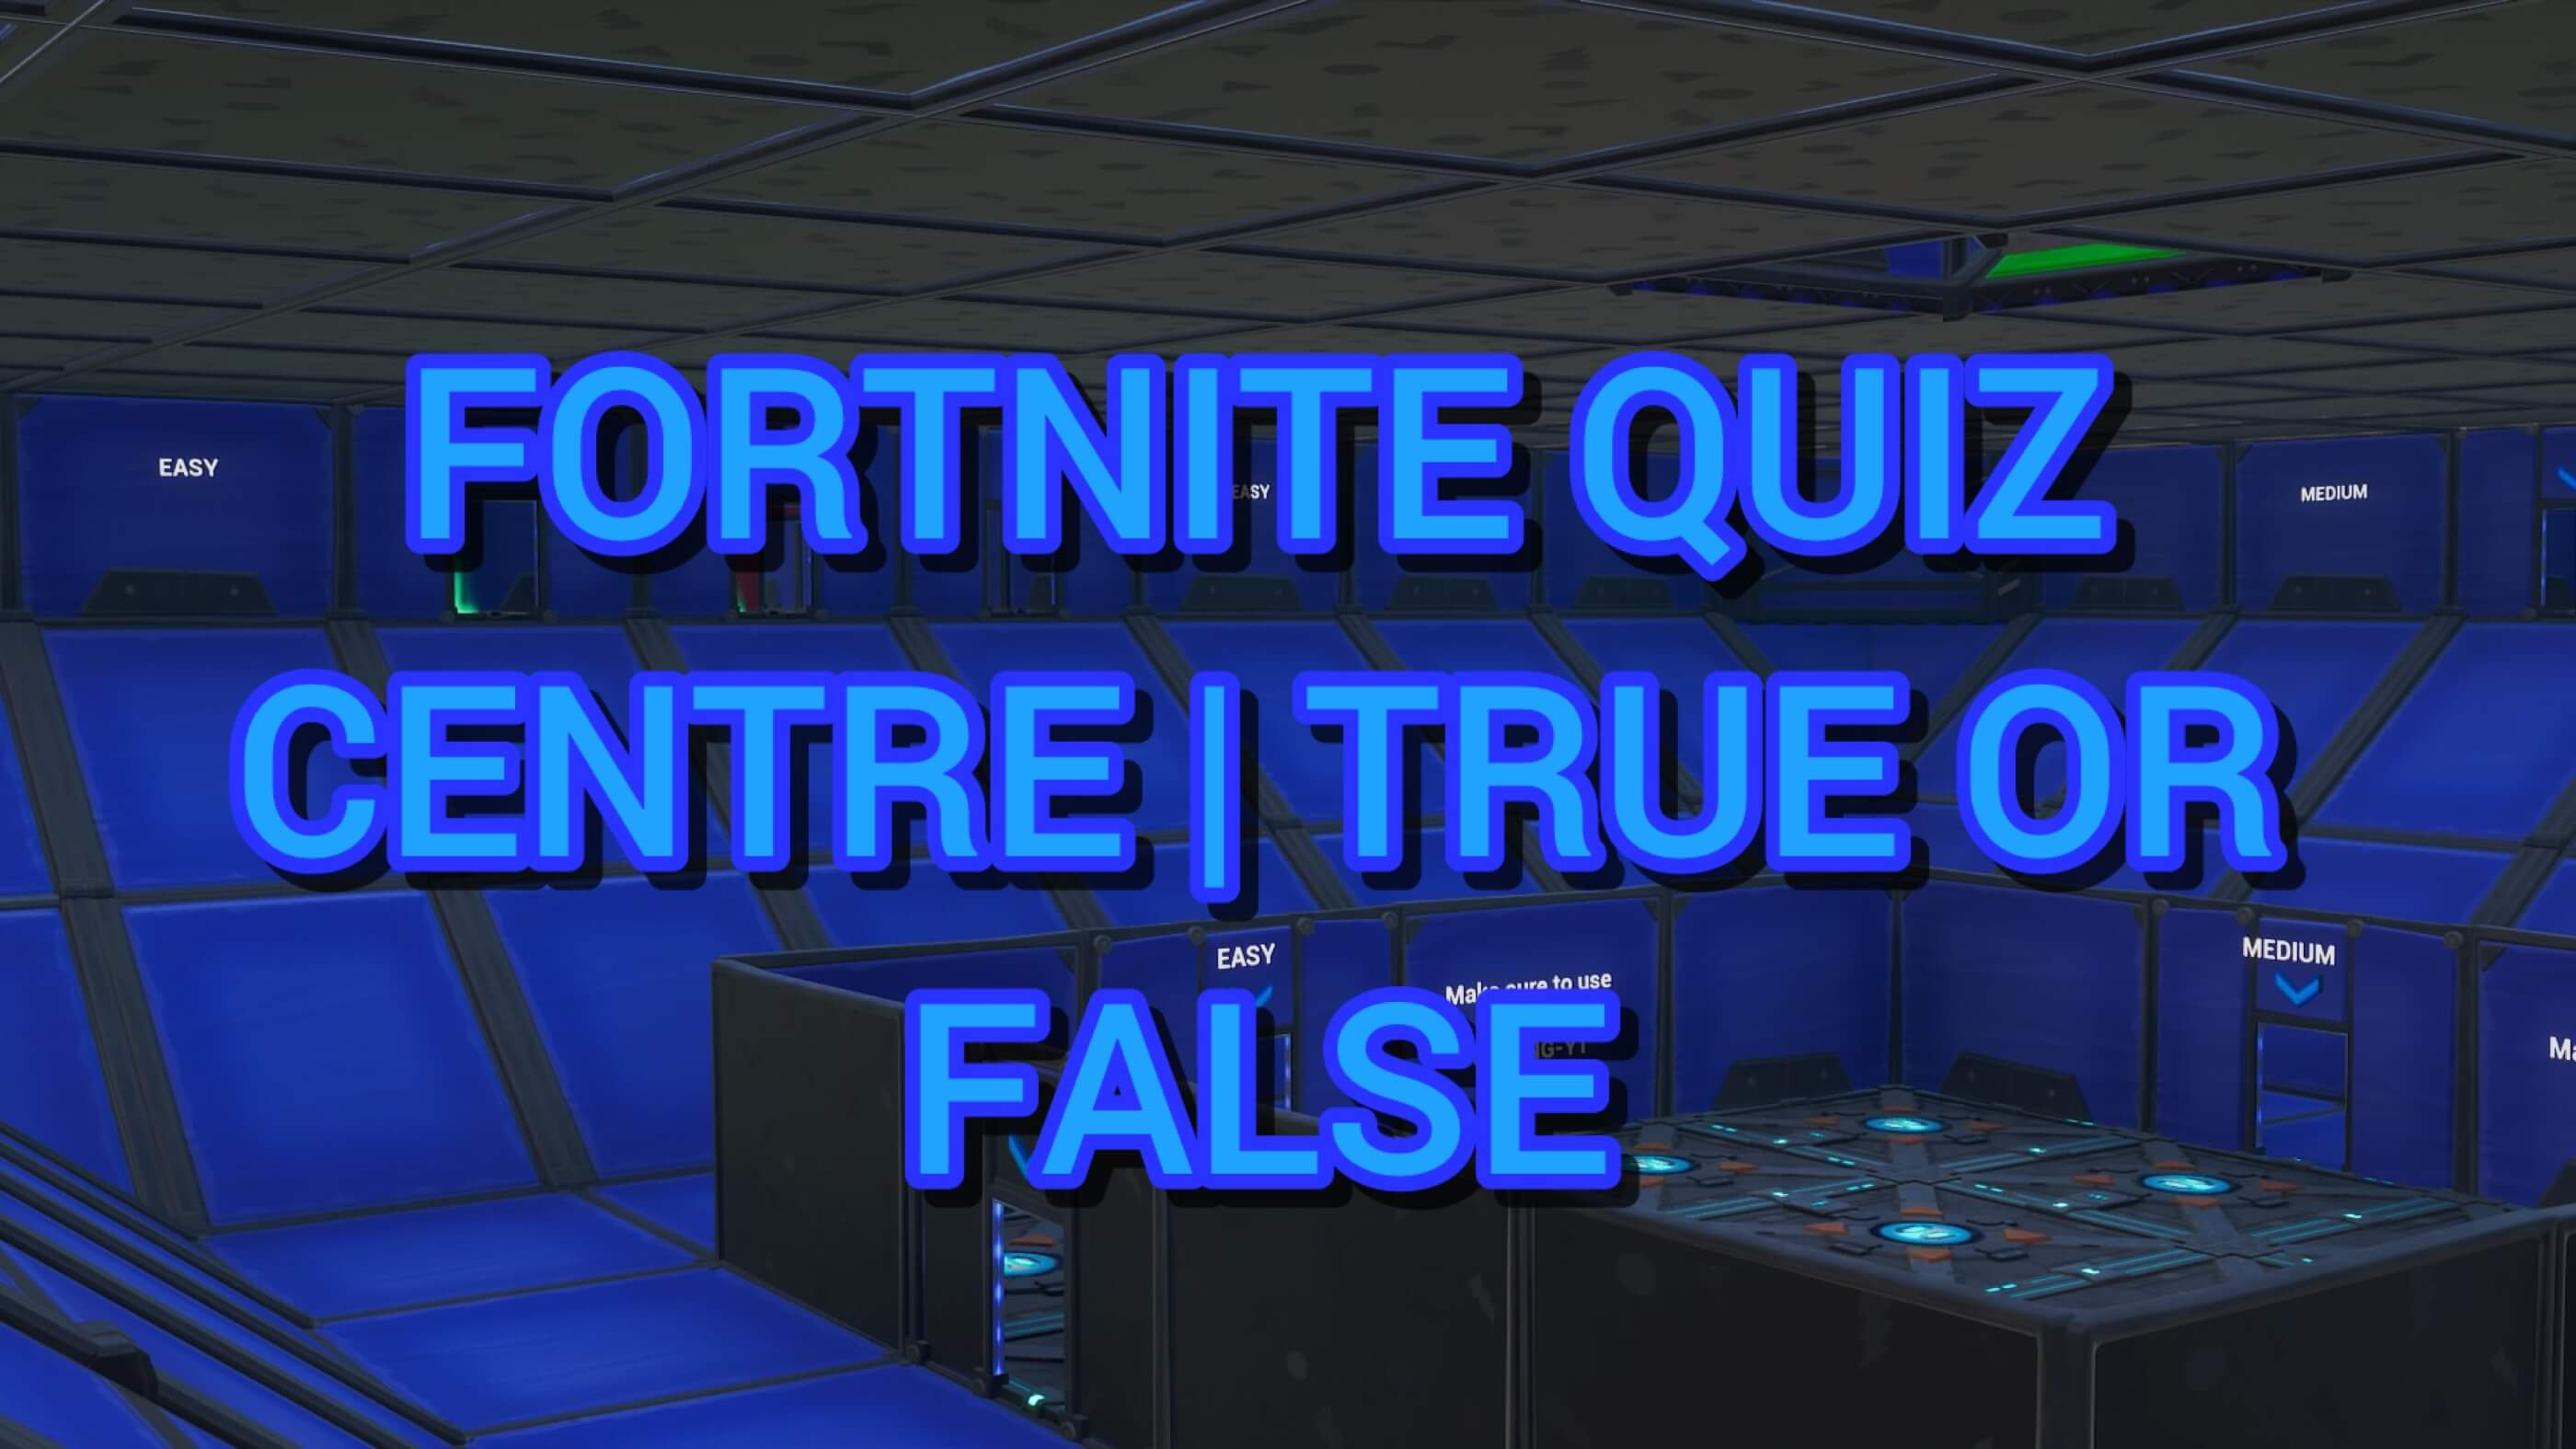 FORTNITE QUIZ CENTRE | TRUE OR FALSE